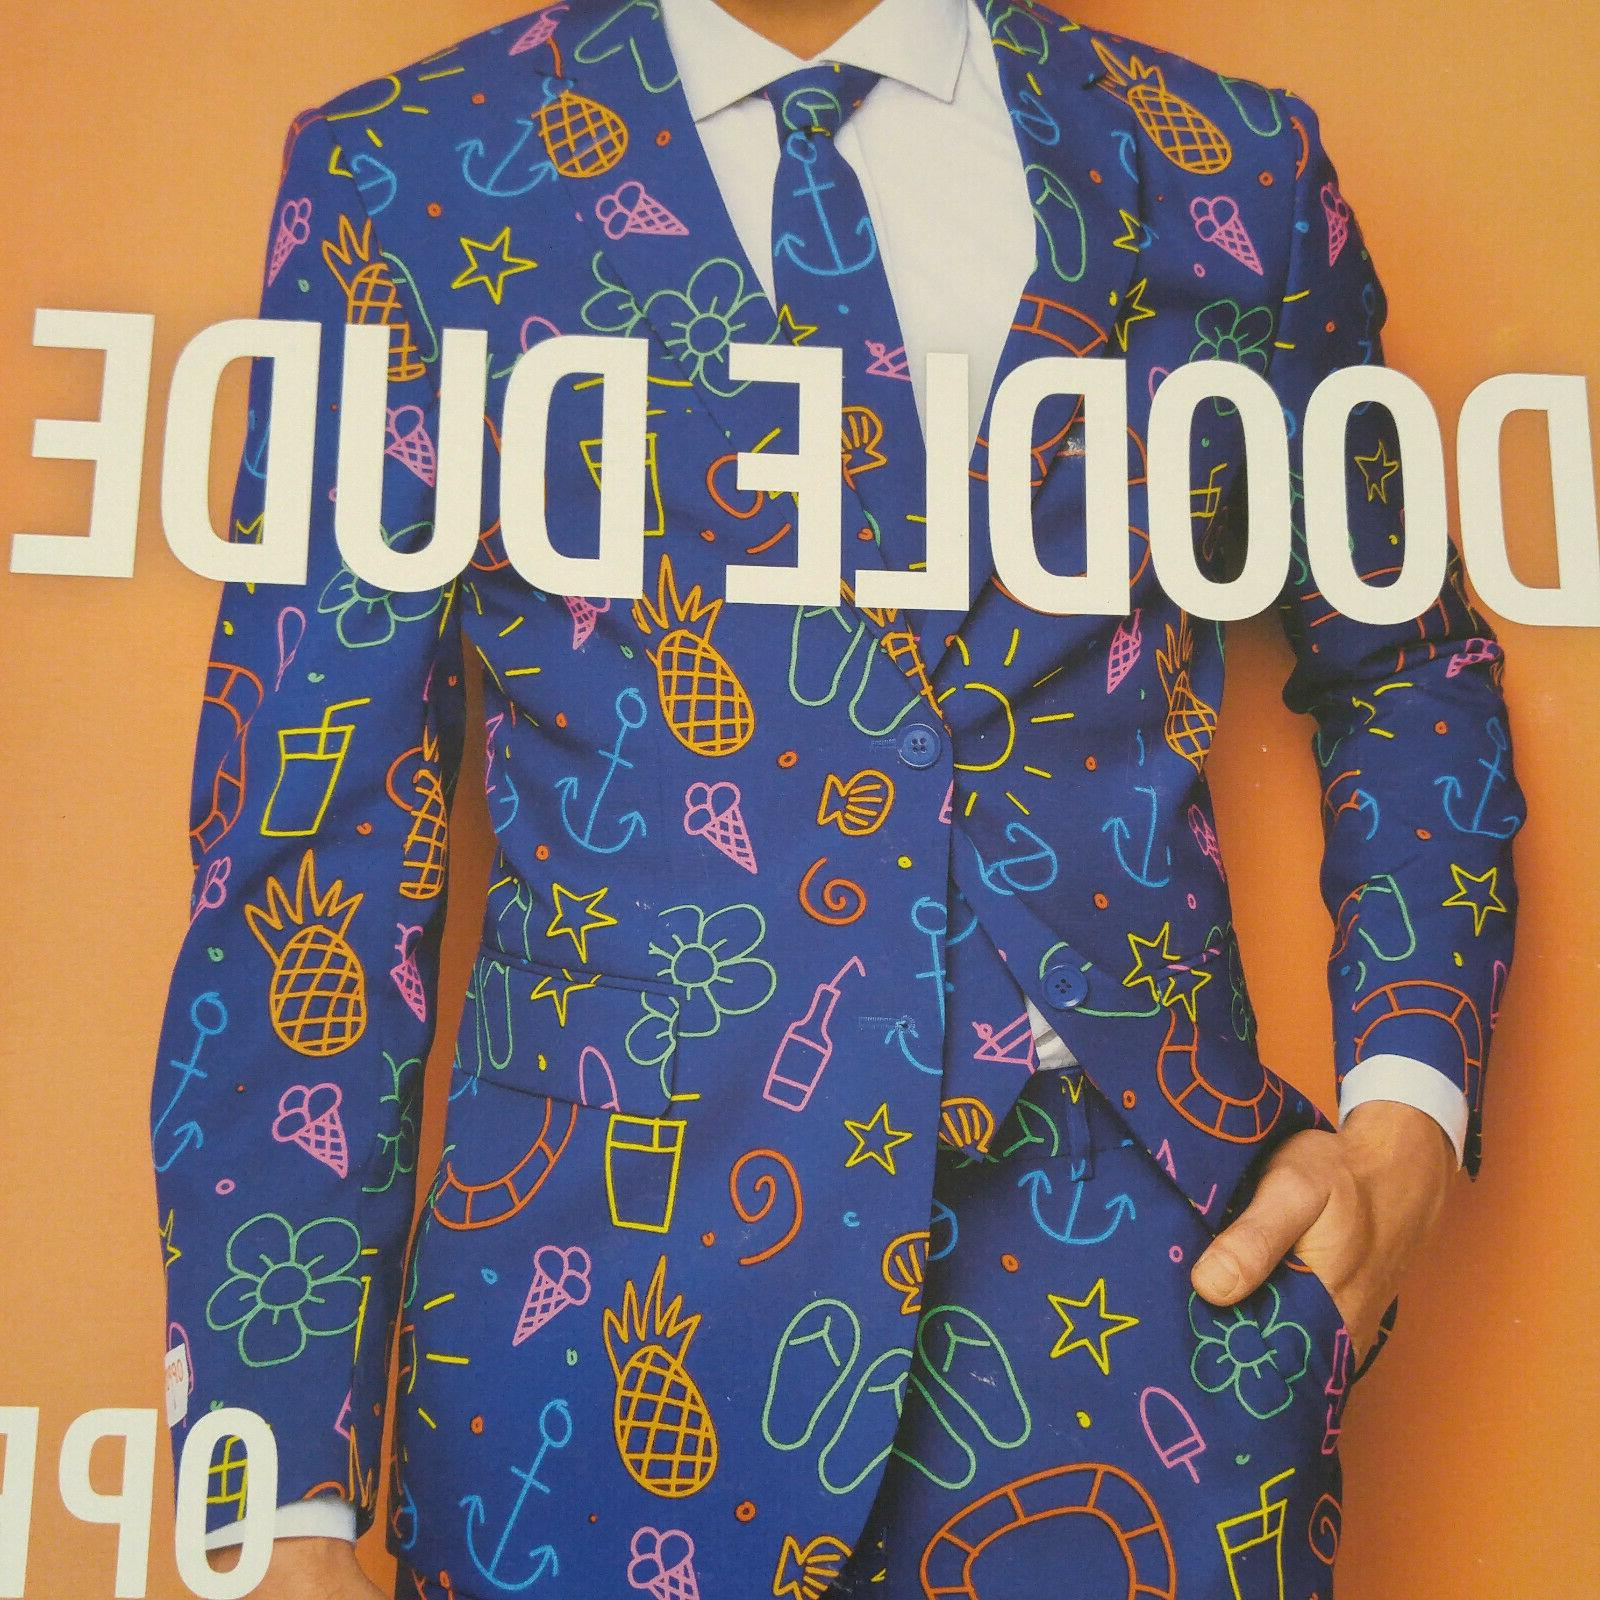 Opposuits Doodle Dude Men's Party Size 42 Three In Box